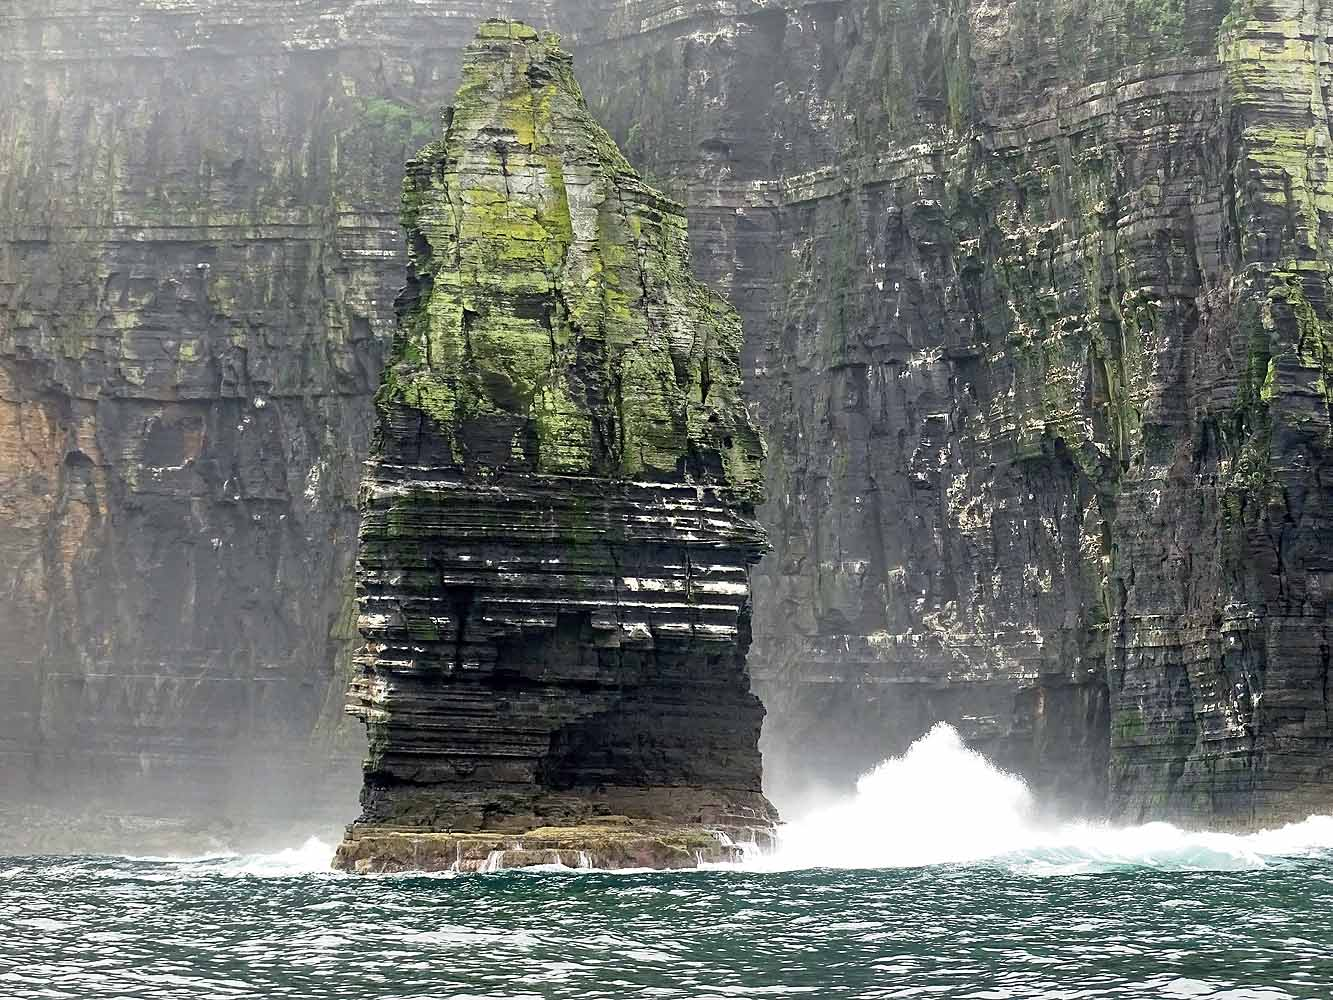 Cliffs of Moher, Steilklippen in Irland